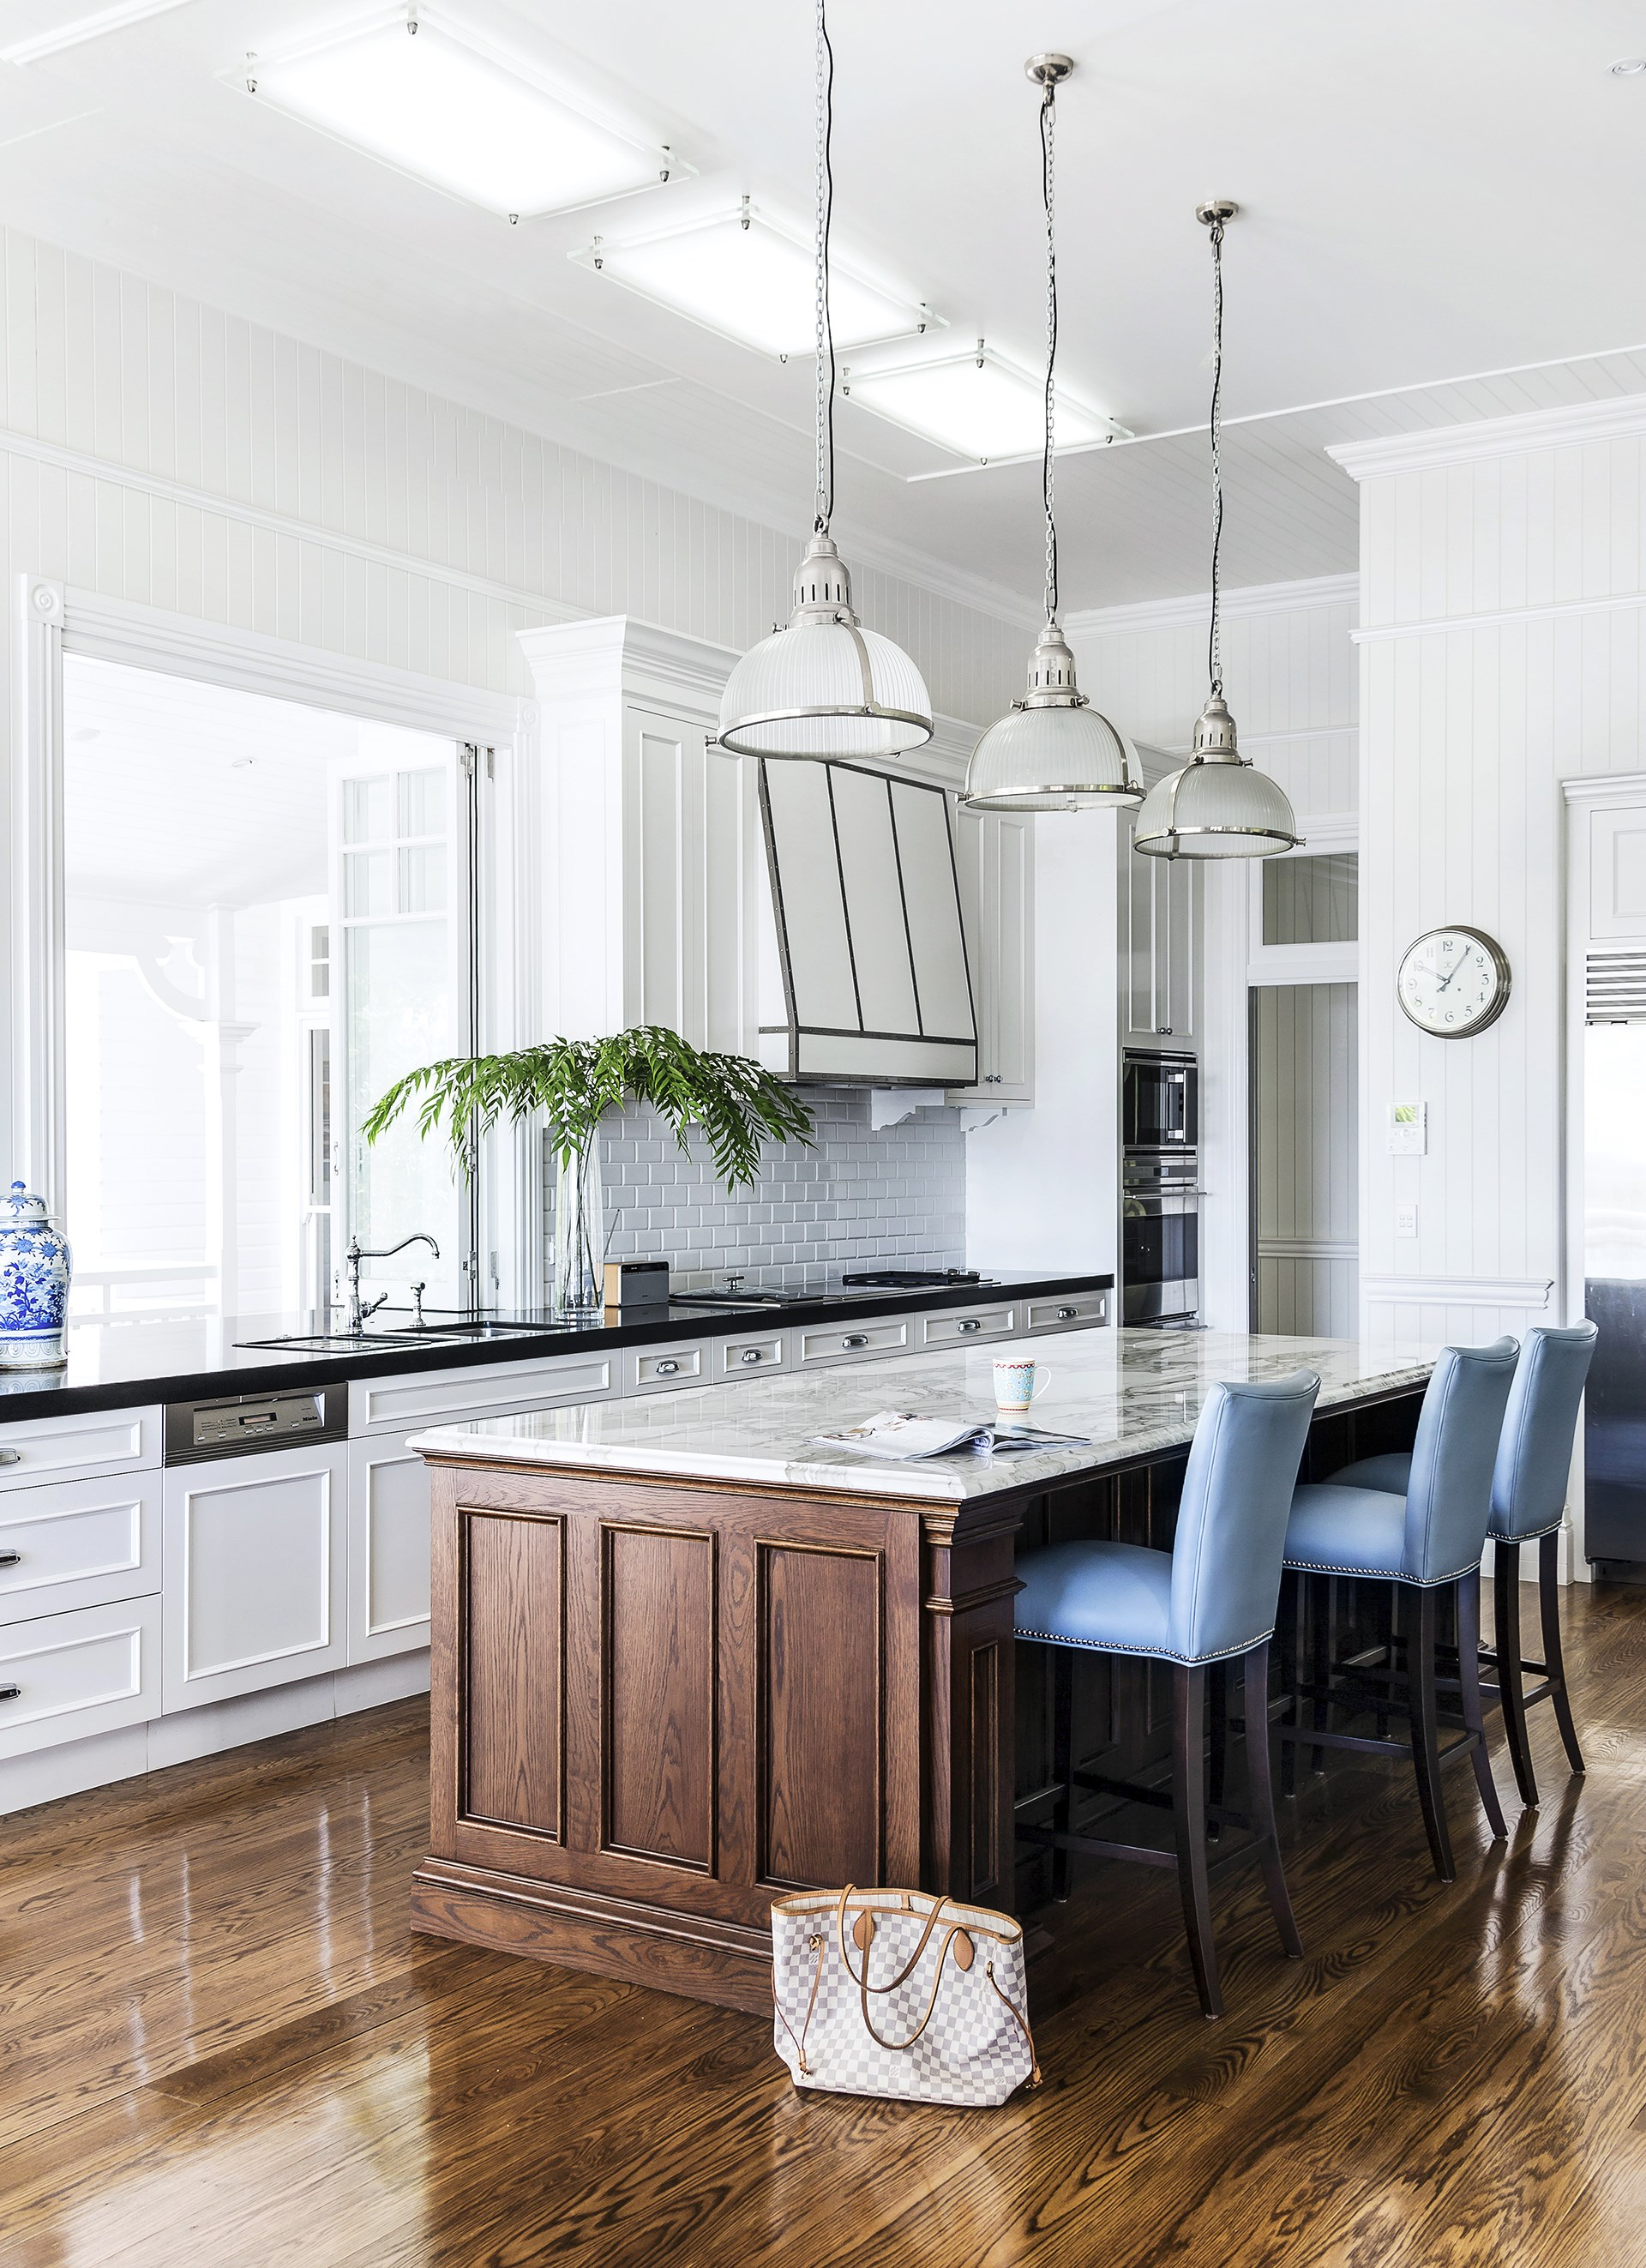 Pendants hung over an island bench help to zone the kitchen in an openplan space. Photo: Maree Homer